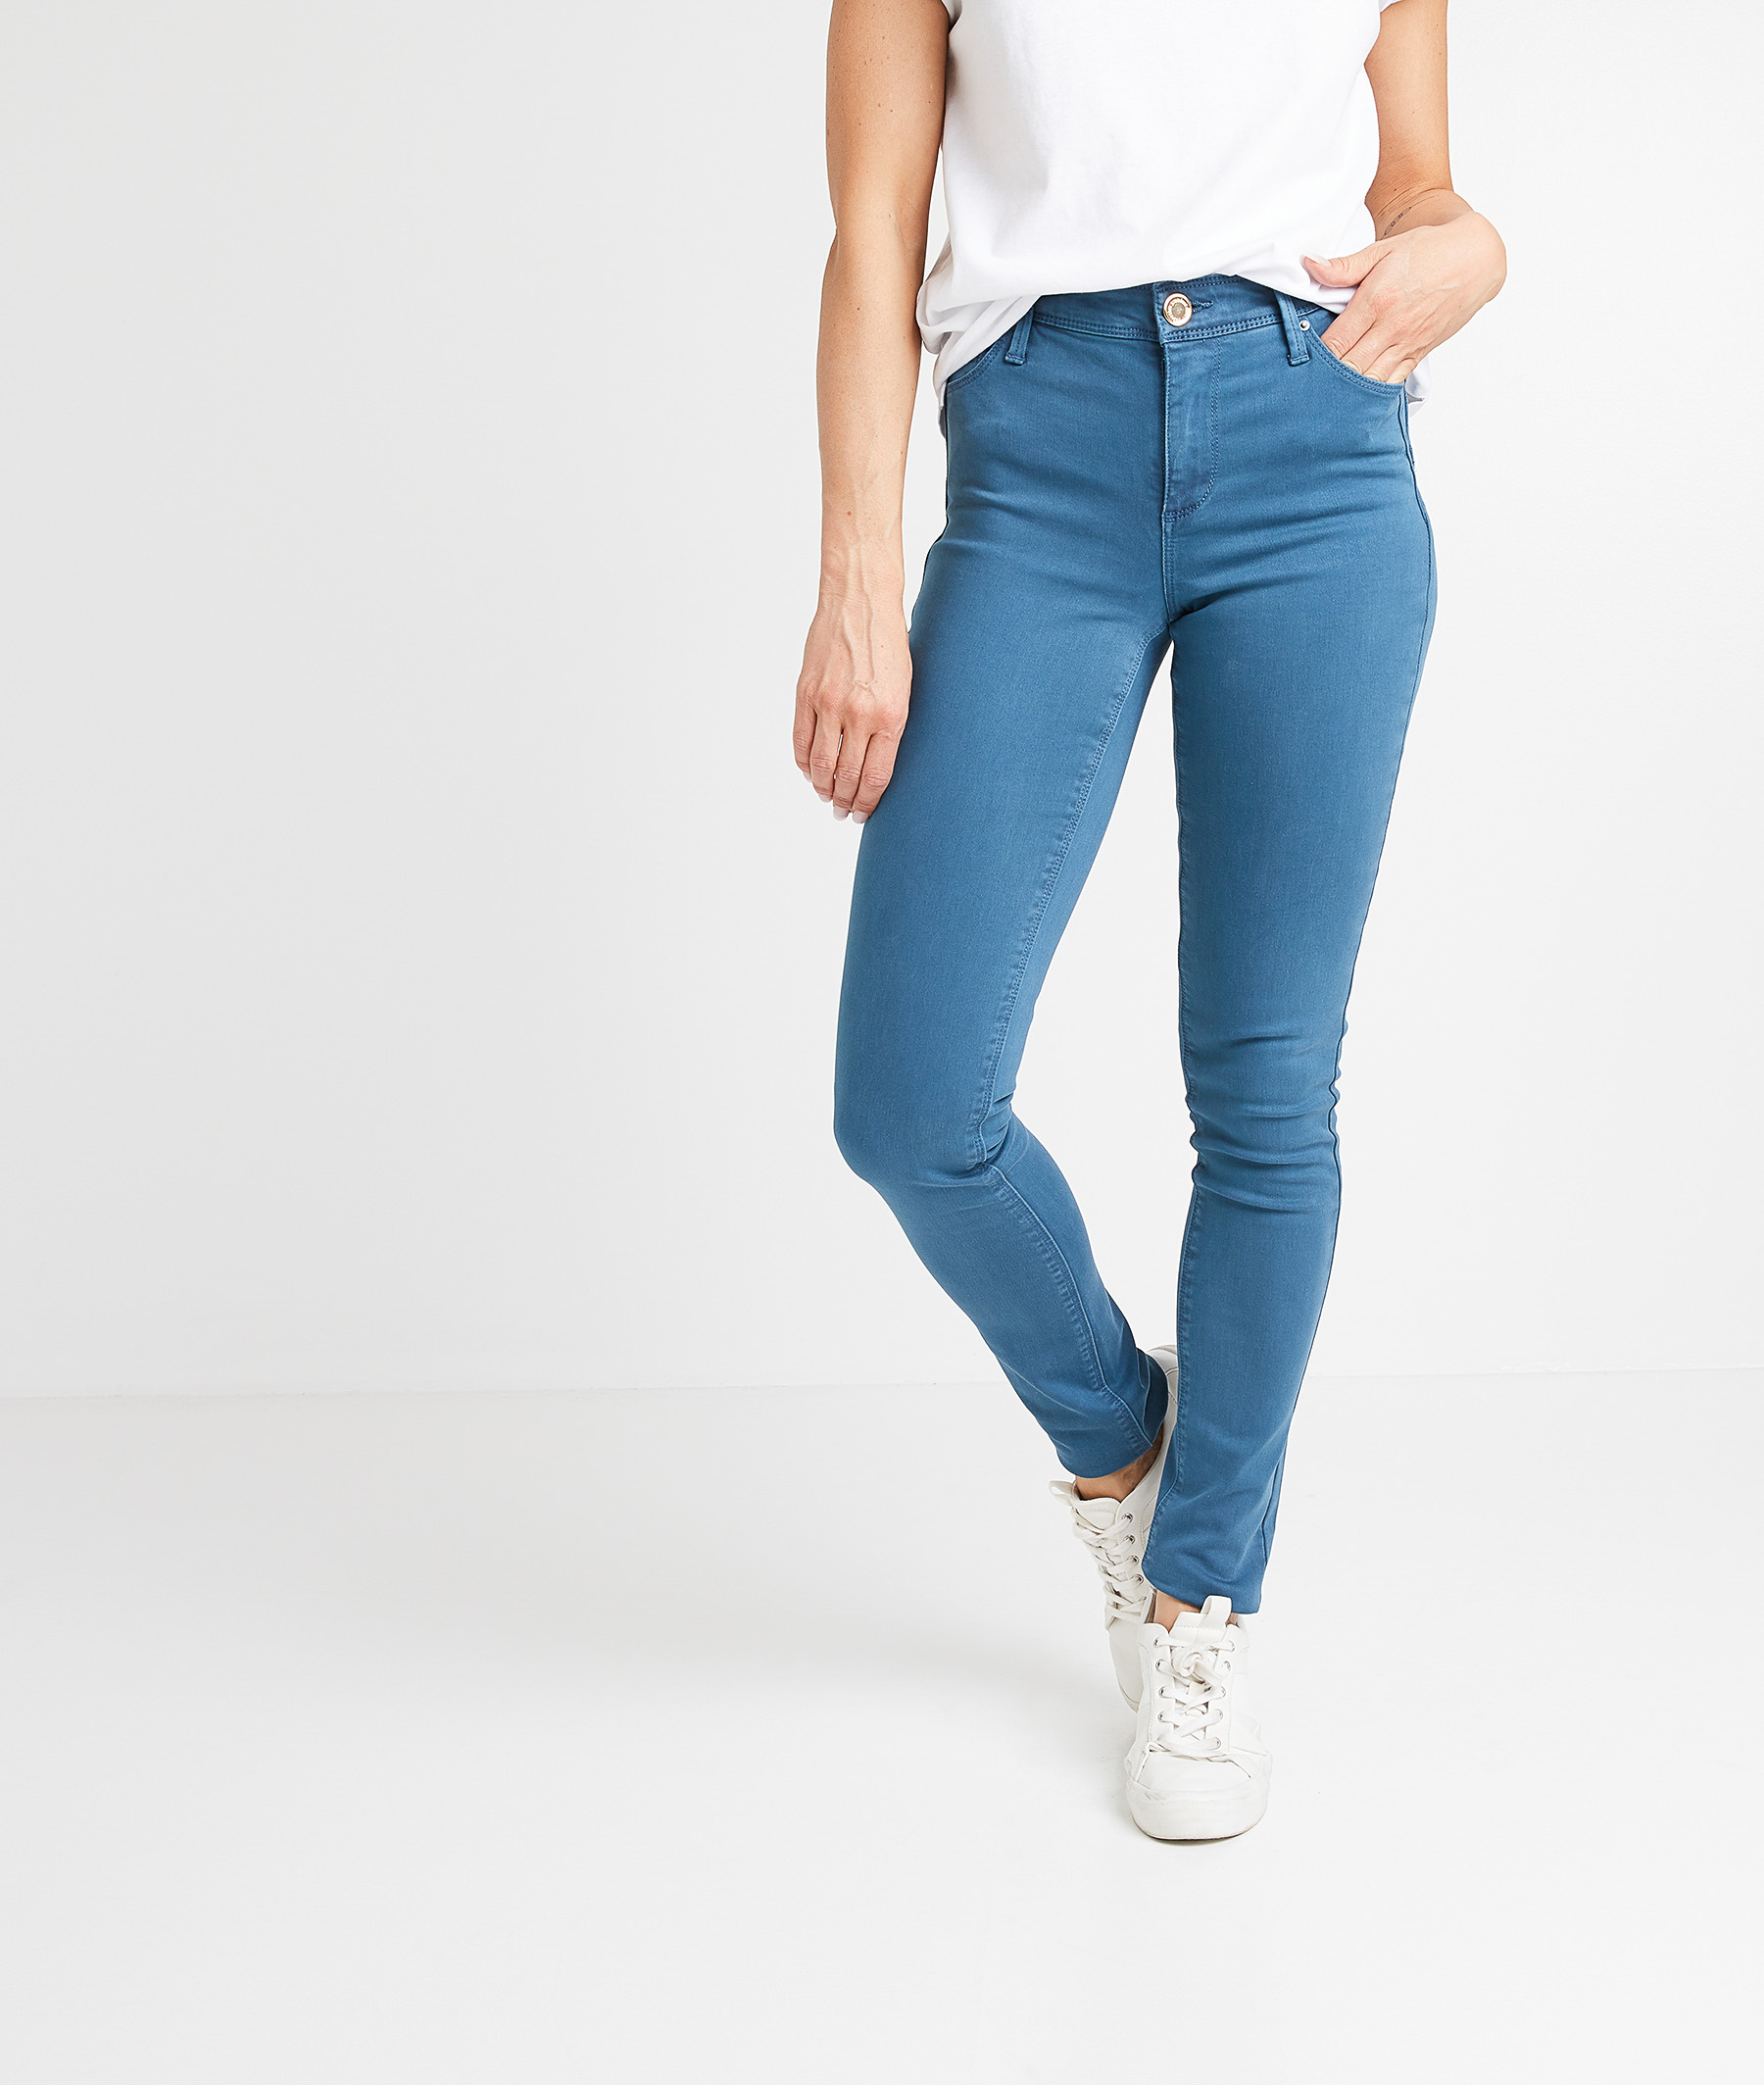 Pantalon flim push up coloré femme PERSAN